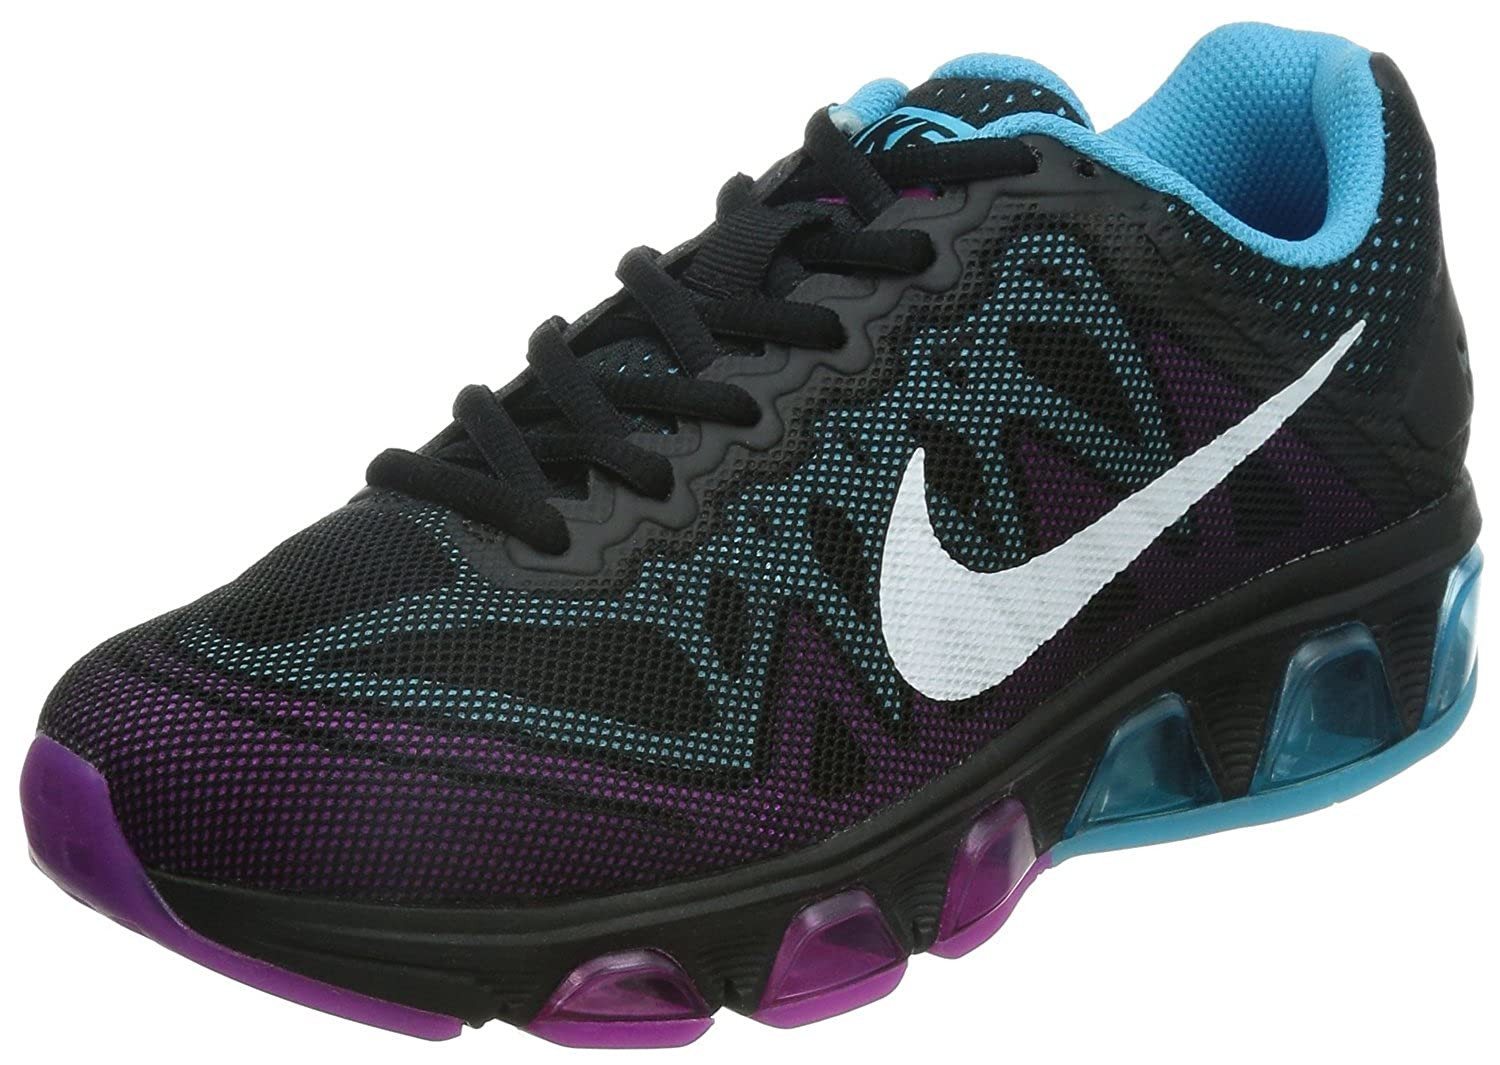 hot sale online 6cc5a 24d9c Amazon.com   Nike Women s Air Max Tailwind 7 Running Shoe   Road Running